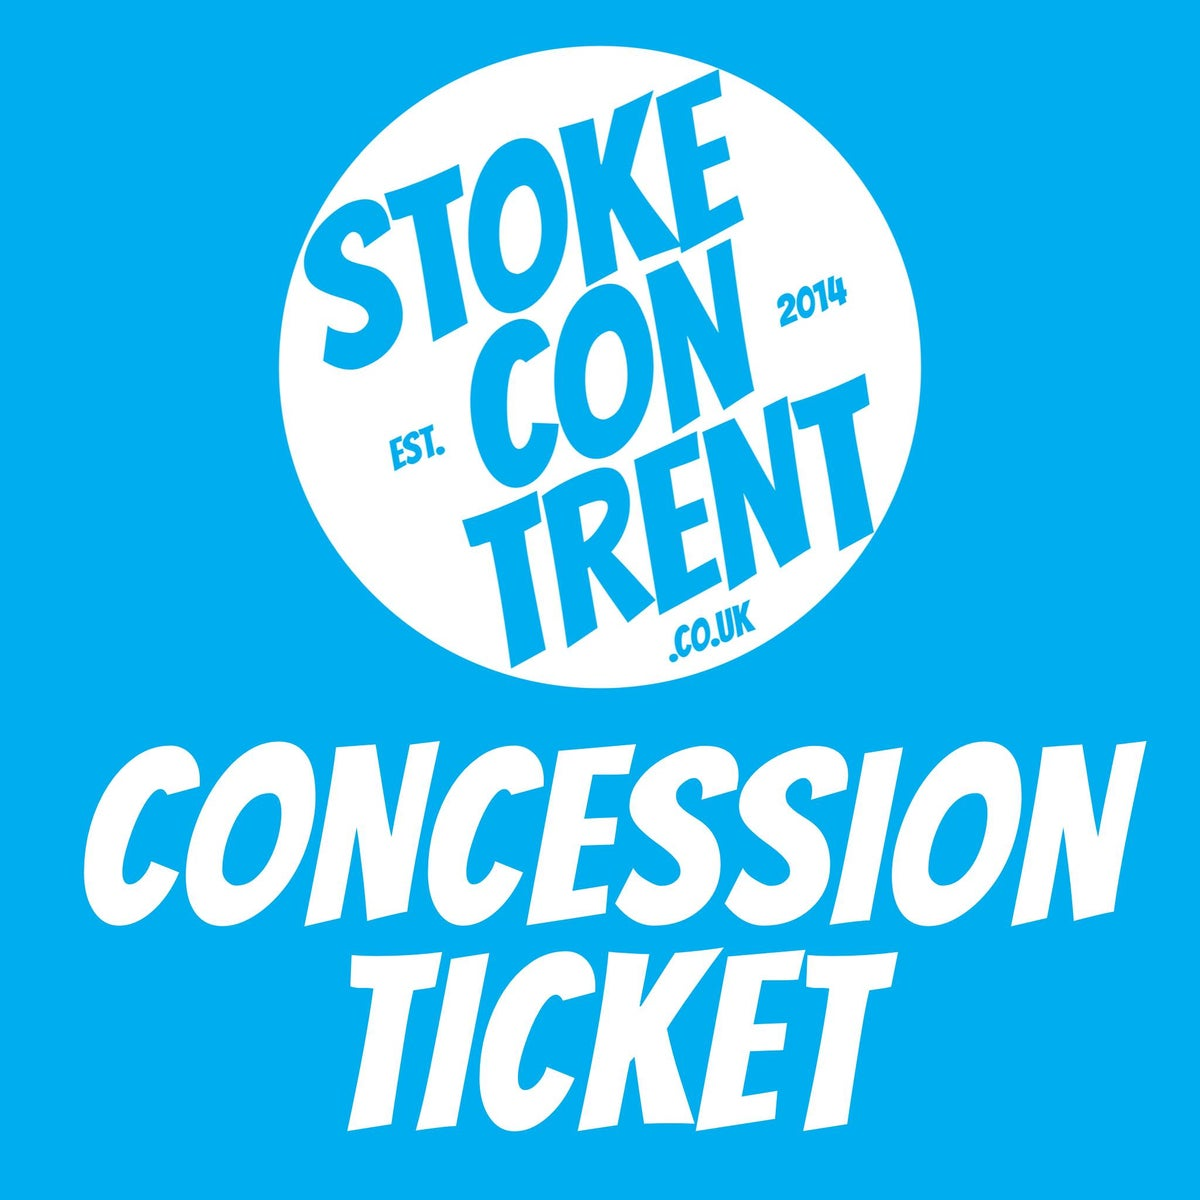 Image of Concession Ticket for Stoke CON Trent 11